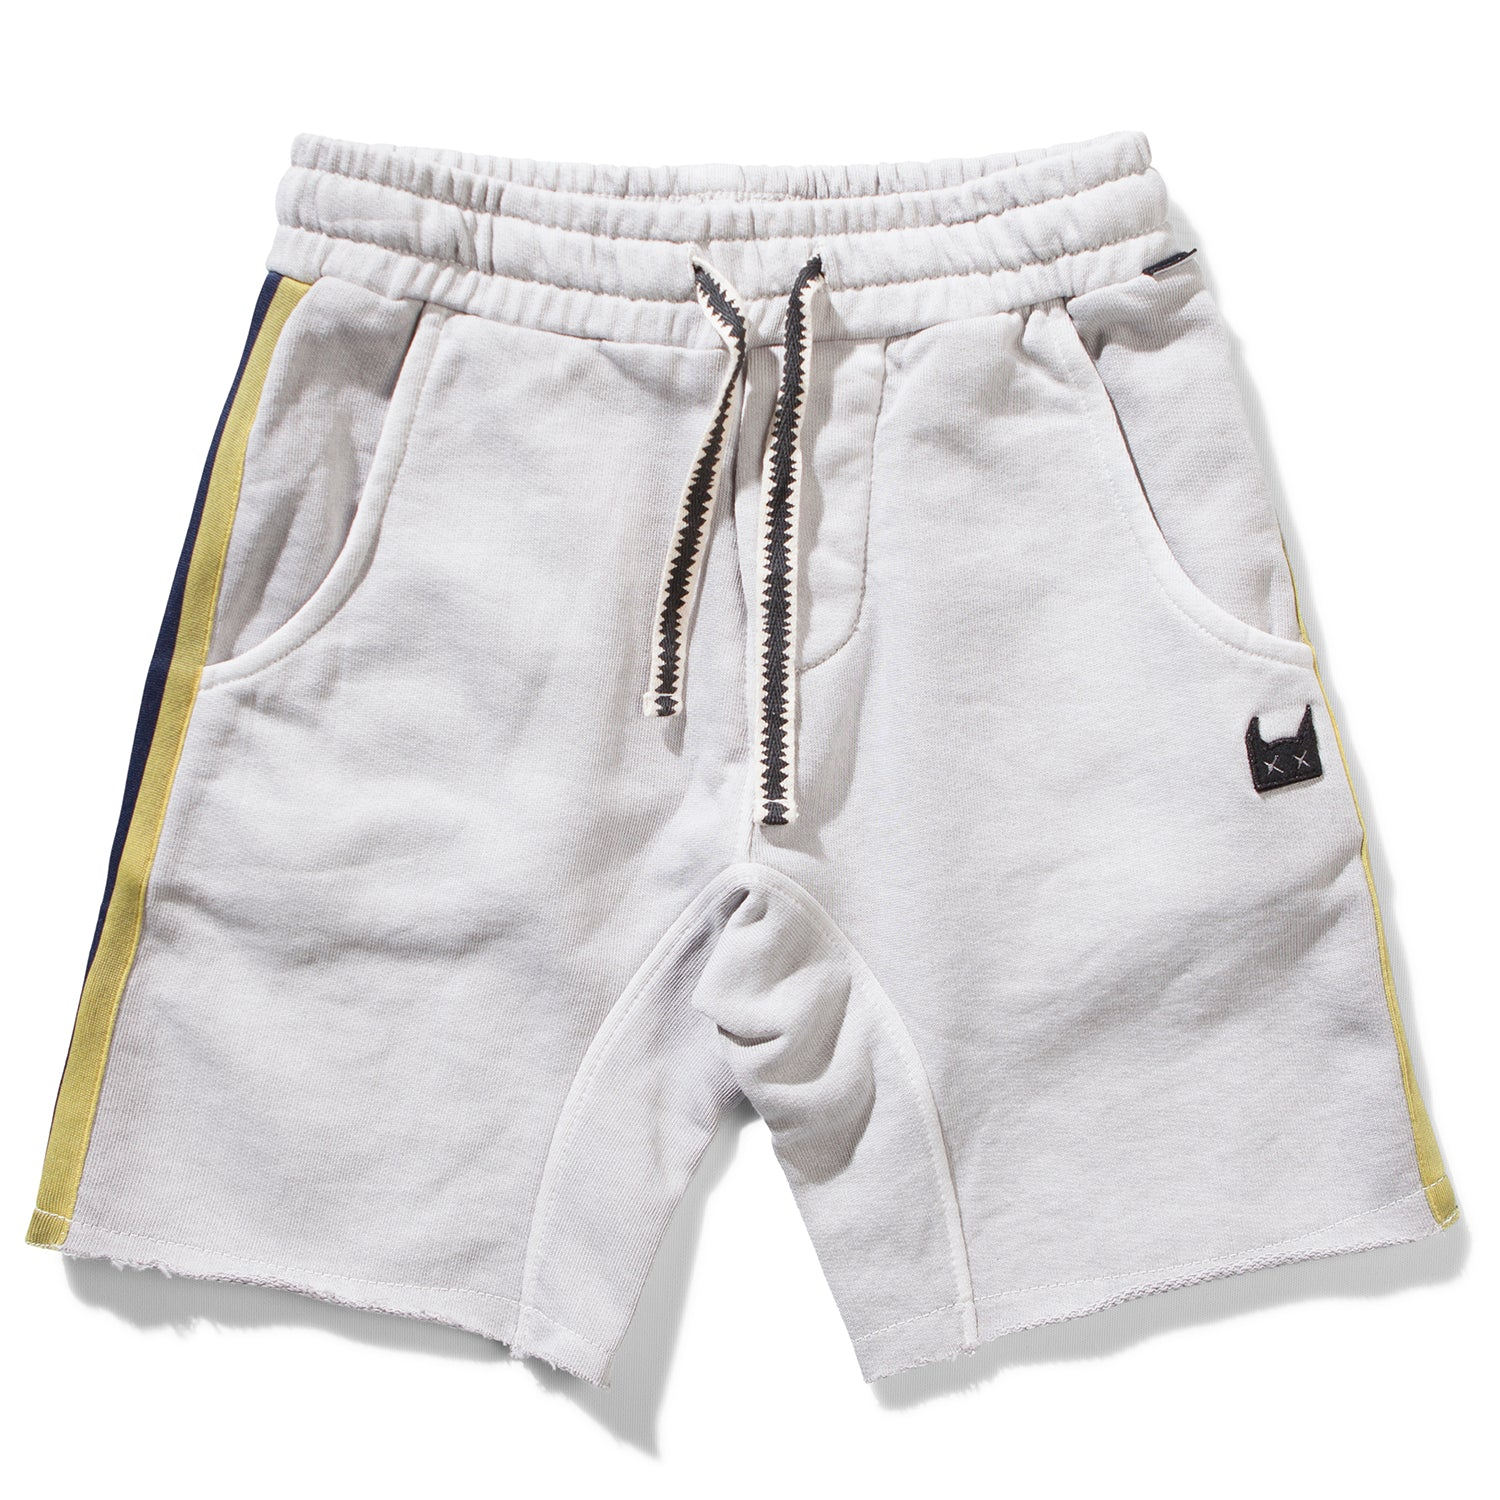 yoya, kids, boys, munsterkids, summer, lightweight, casual, lounge, pull on, drawstring, sweat shorts